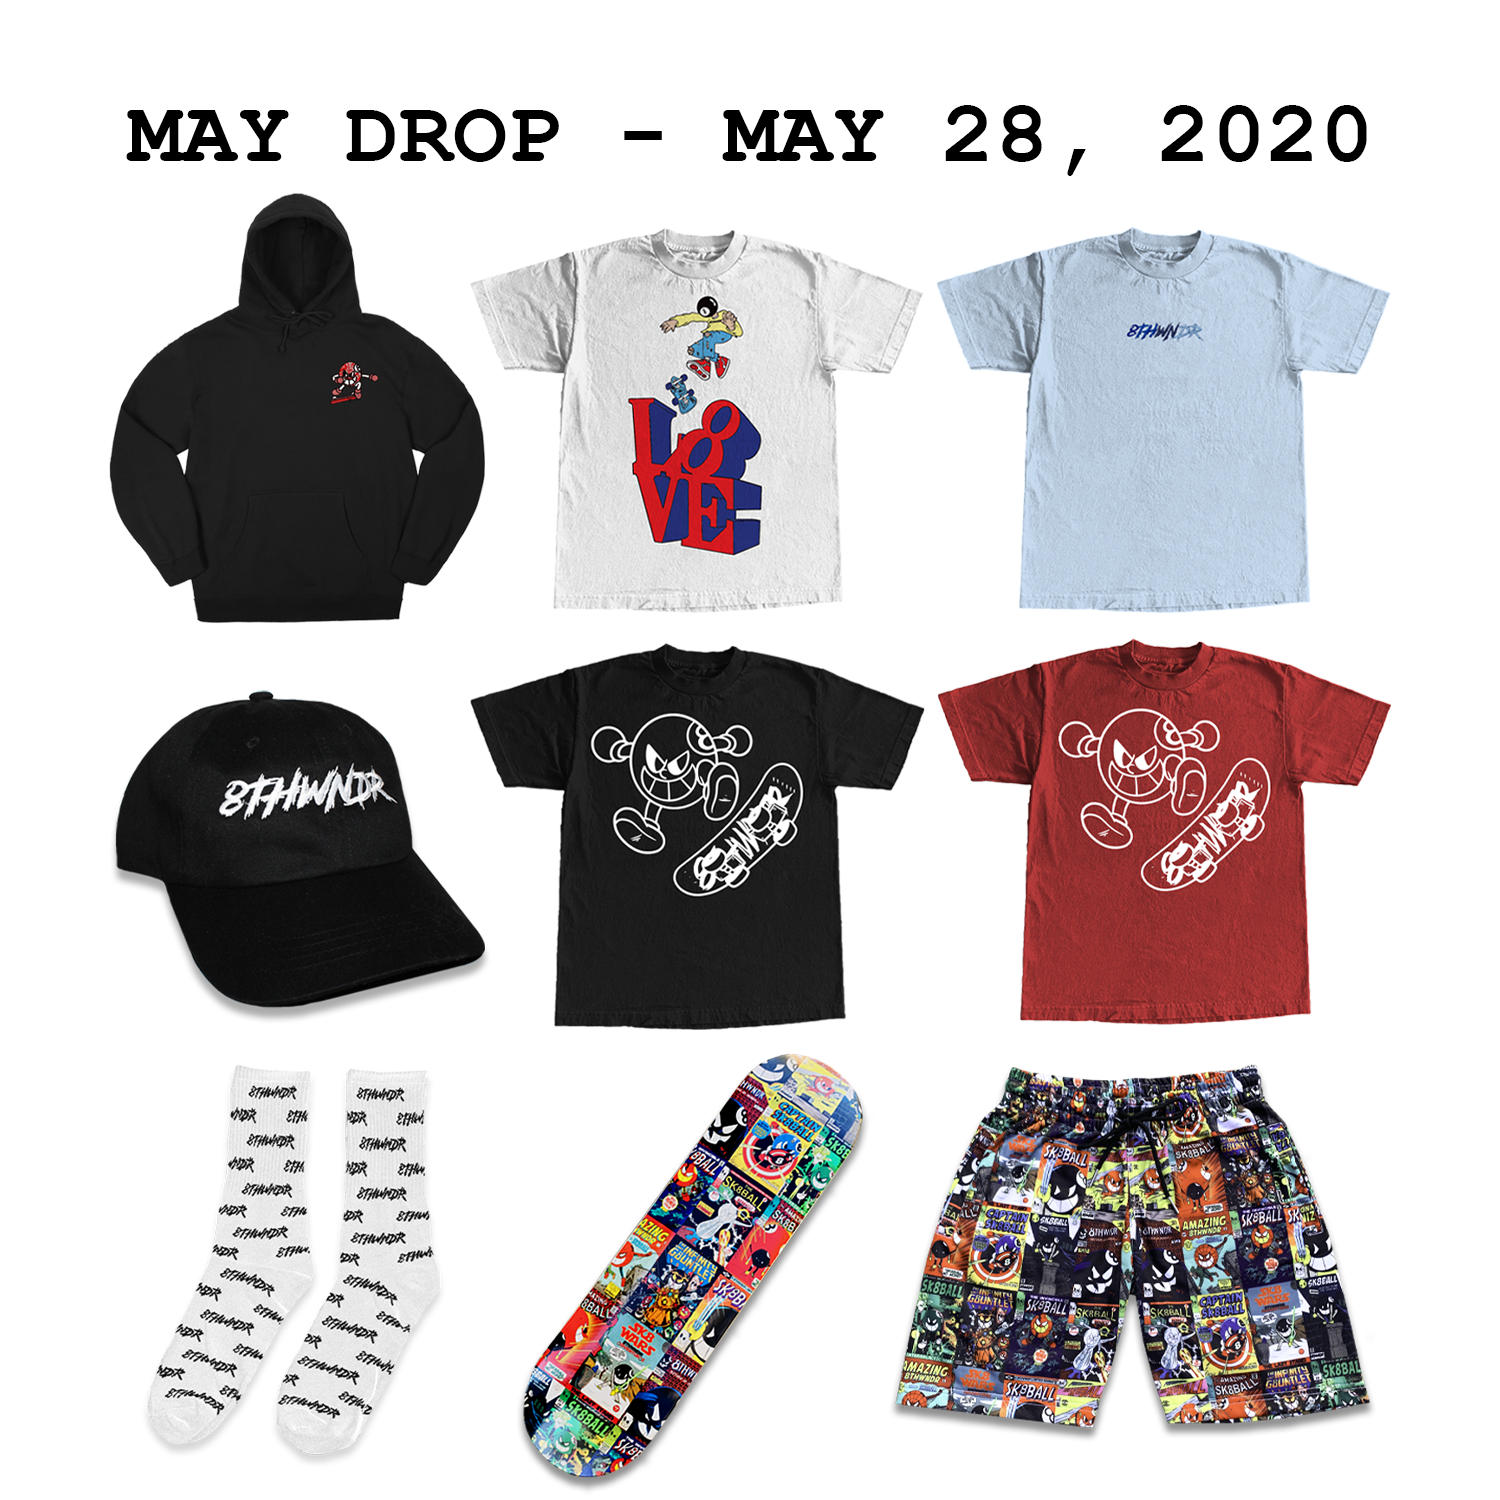 may-drop-archive